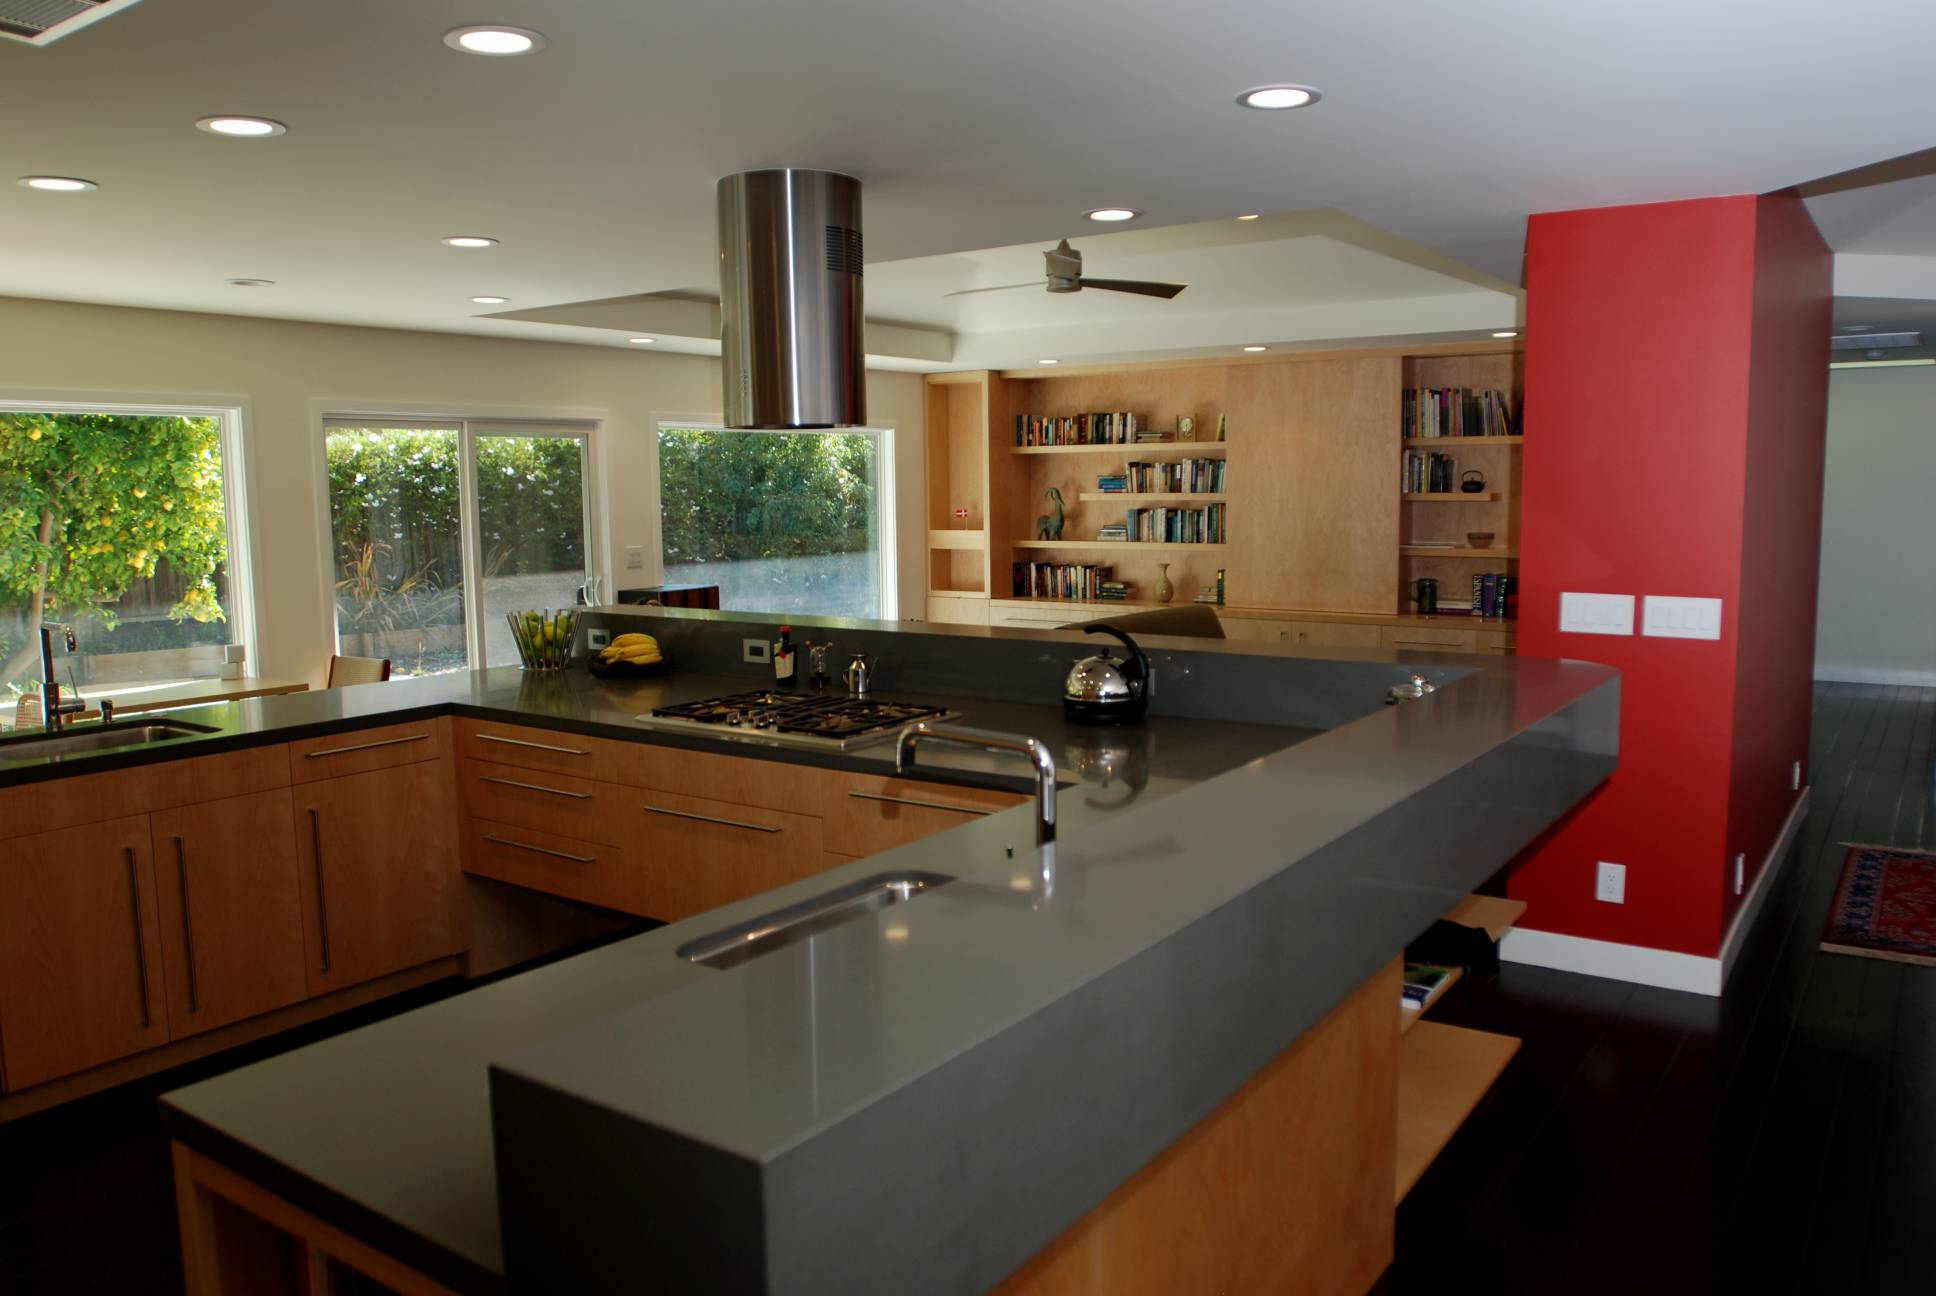 large kitchen with grey countertops wood cabinetry and view, Architect work, Interior design work, Menlo Park